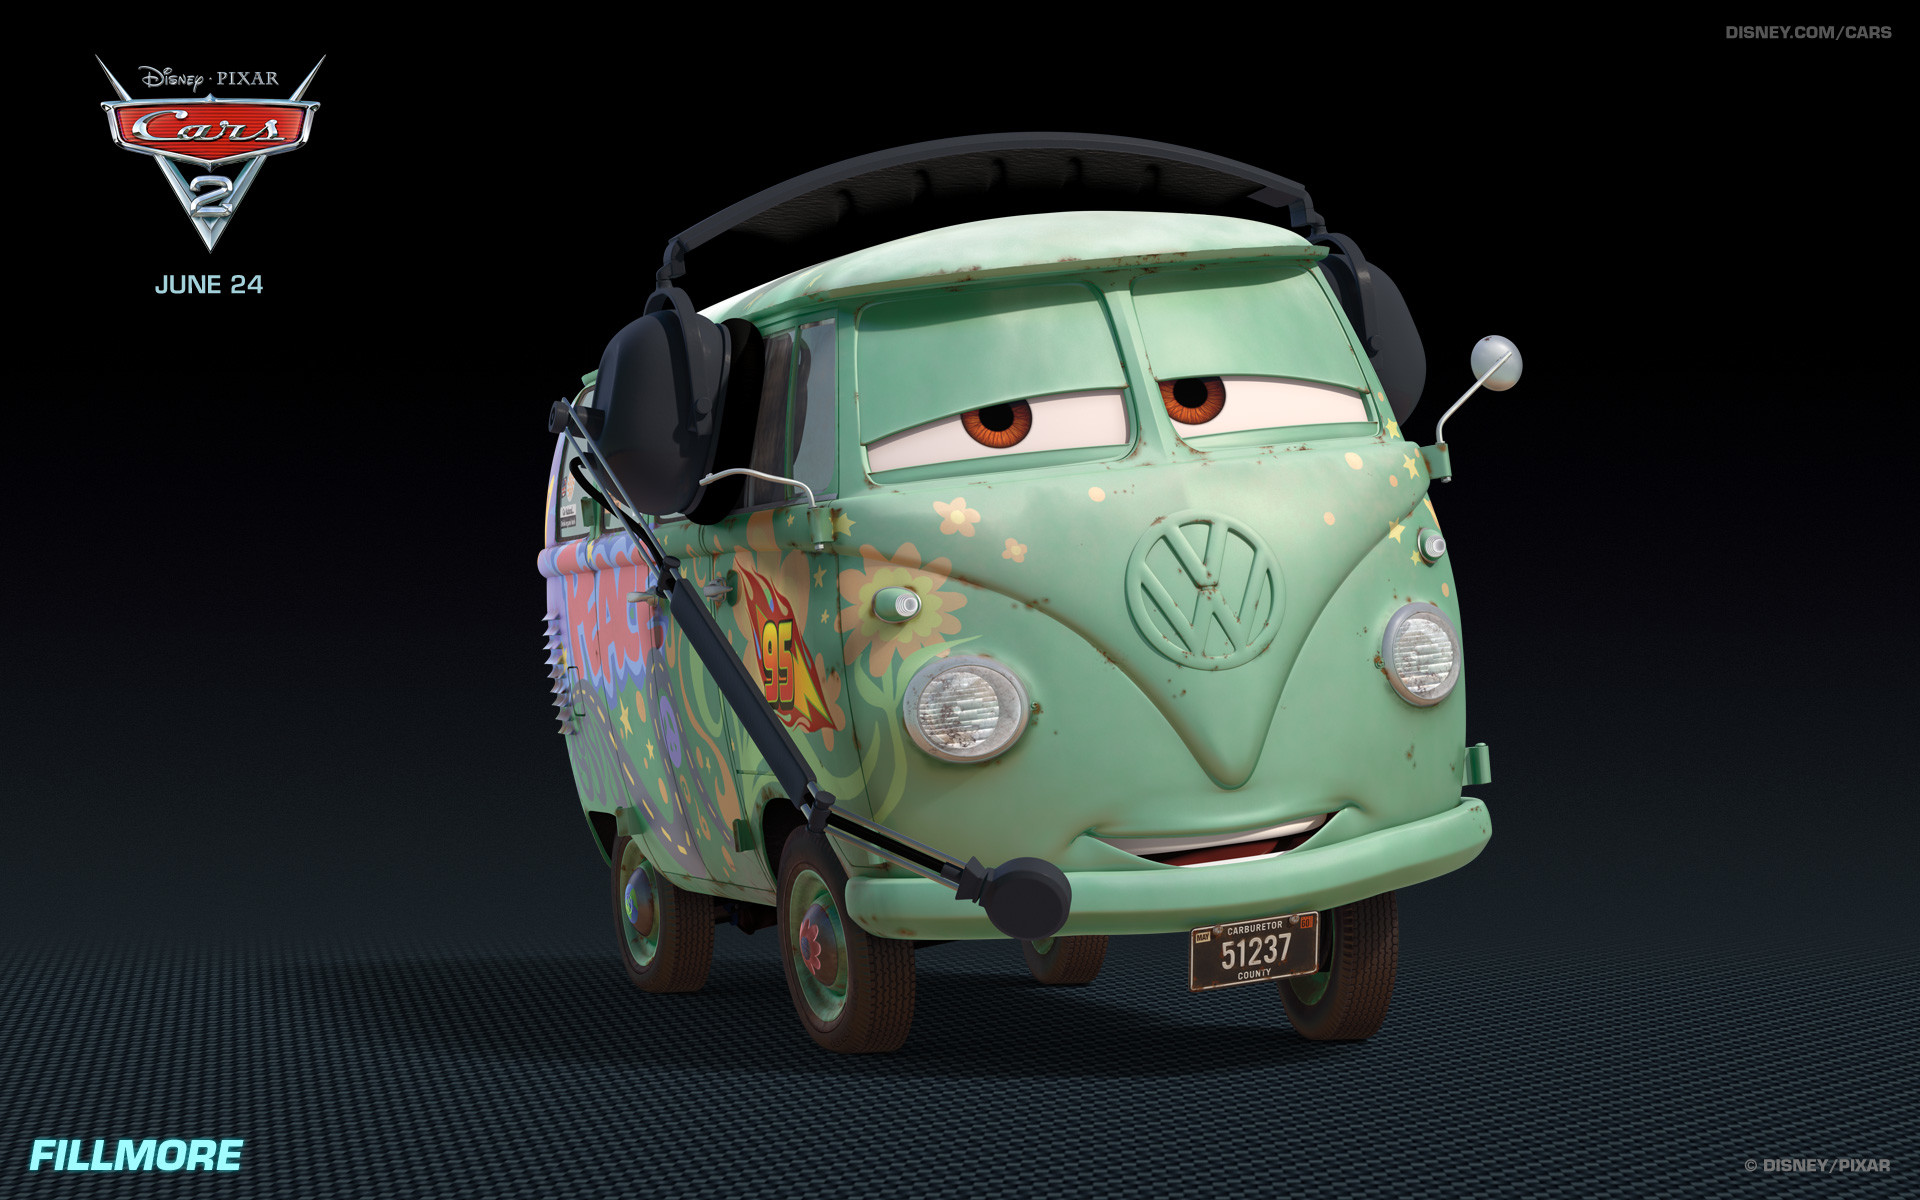 Fillmore the Hippy Car from Disney's Cars 2 HD wallpaper – Click picture  for high resolution HD wallpaper